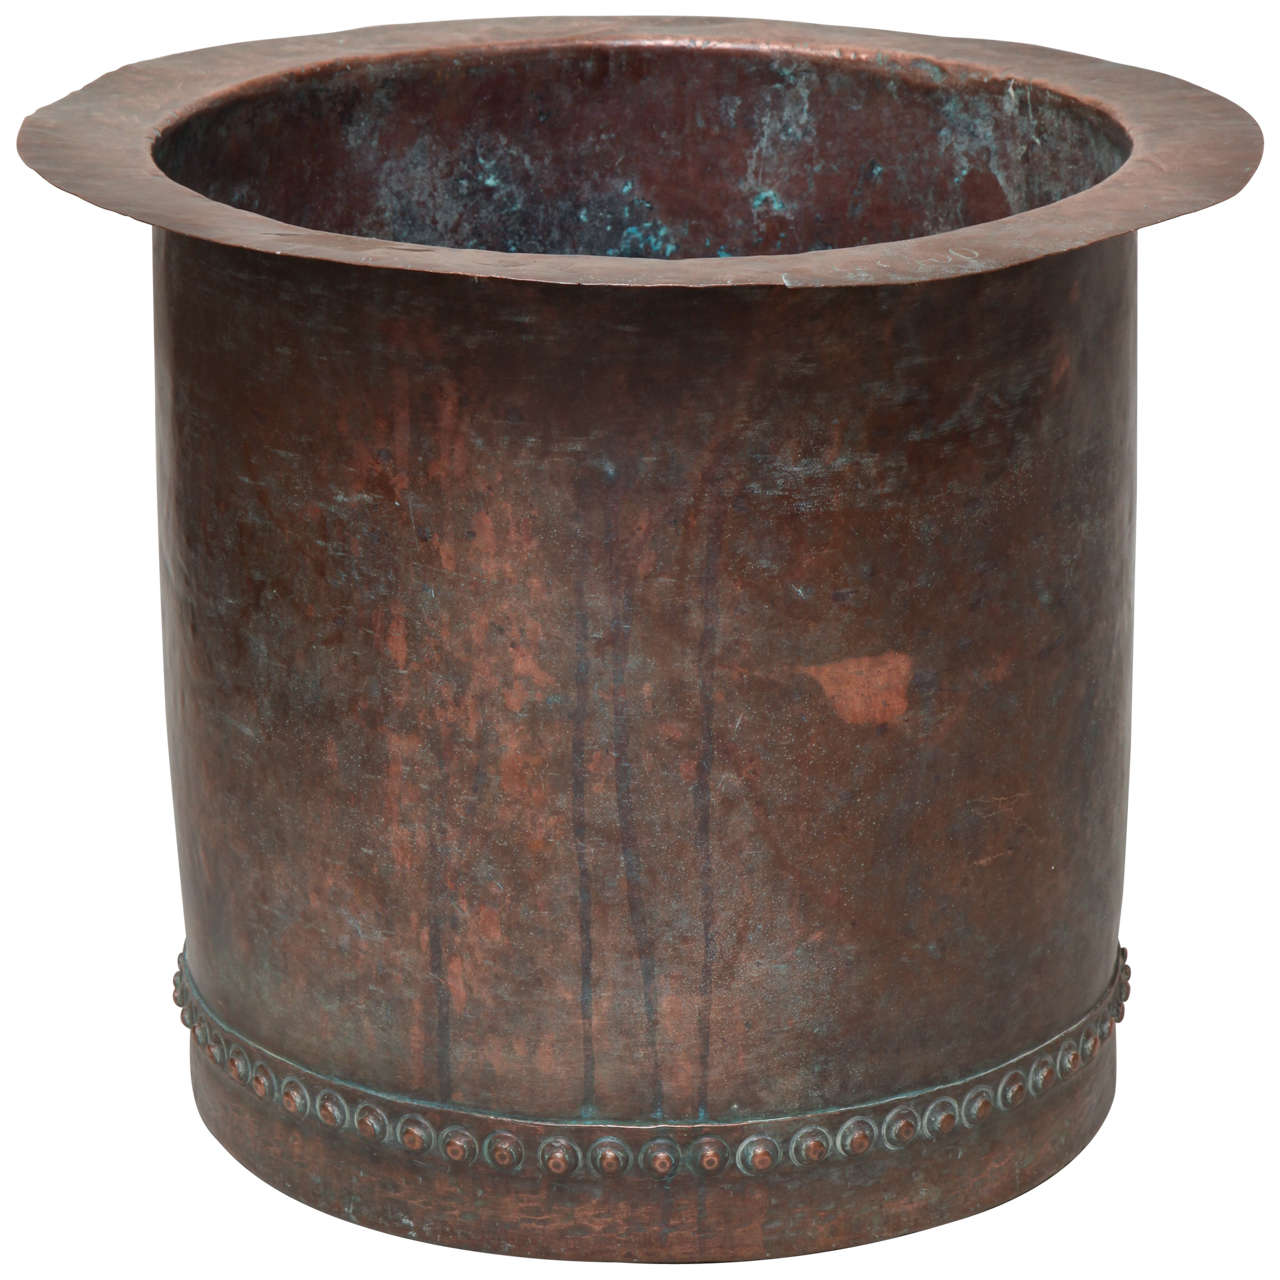 Fantastic Riveted Copper Early 19th Century Oversize Log Bin For Sale